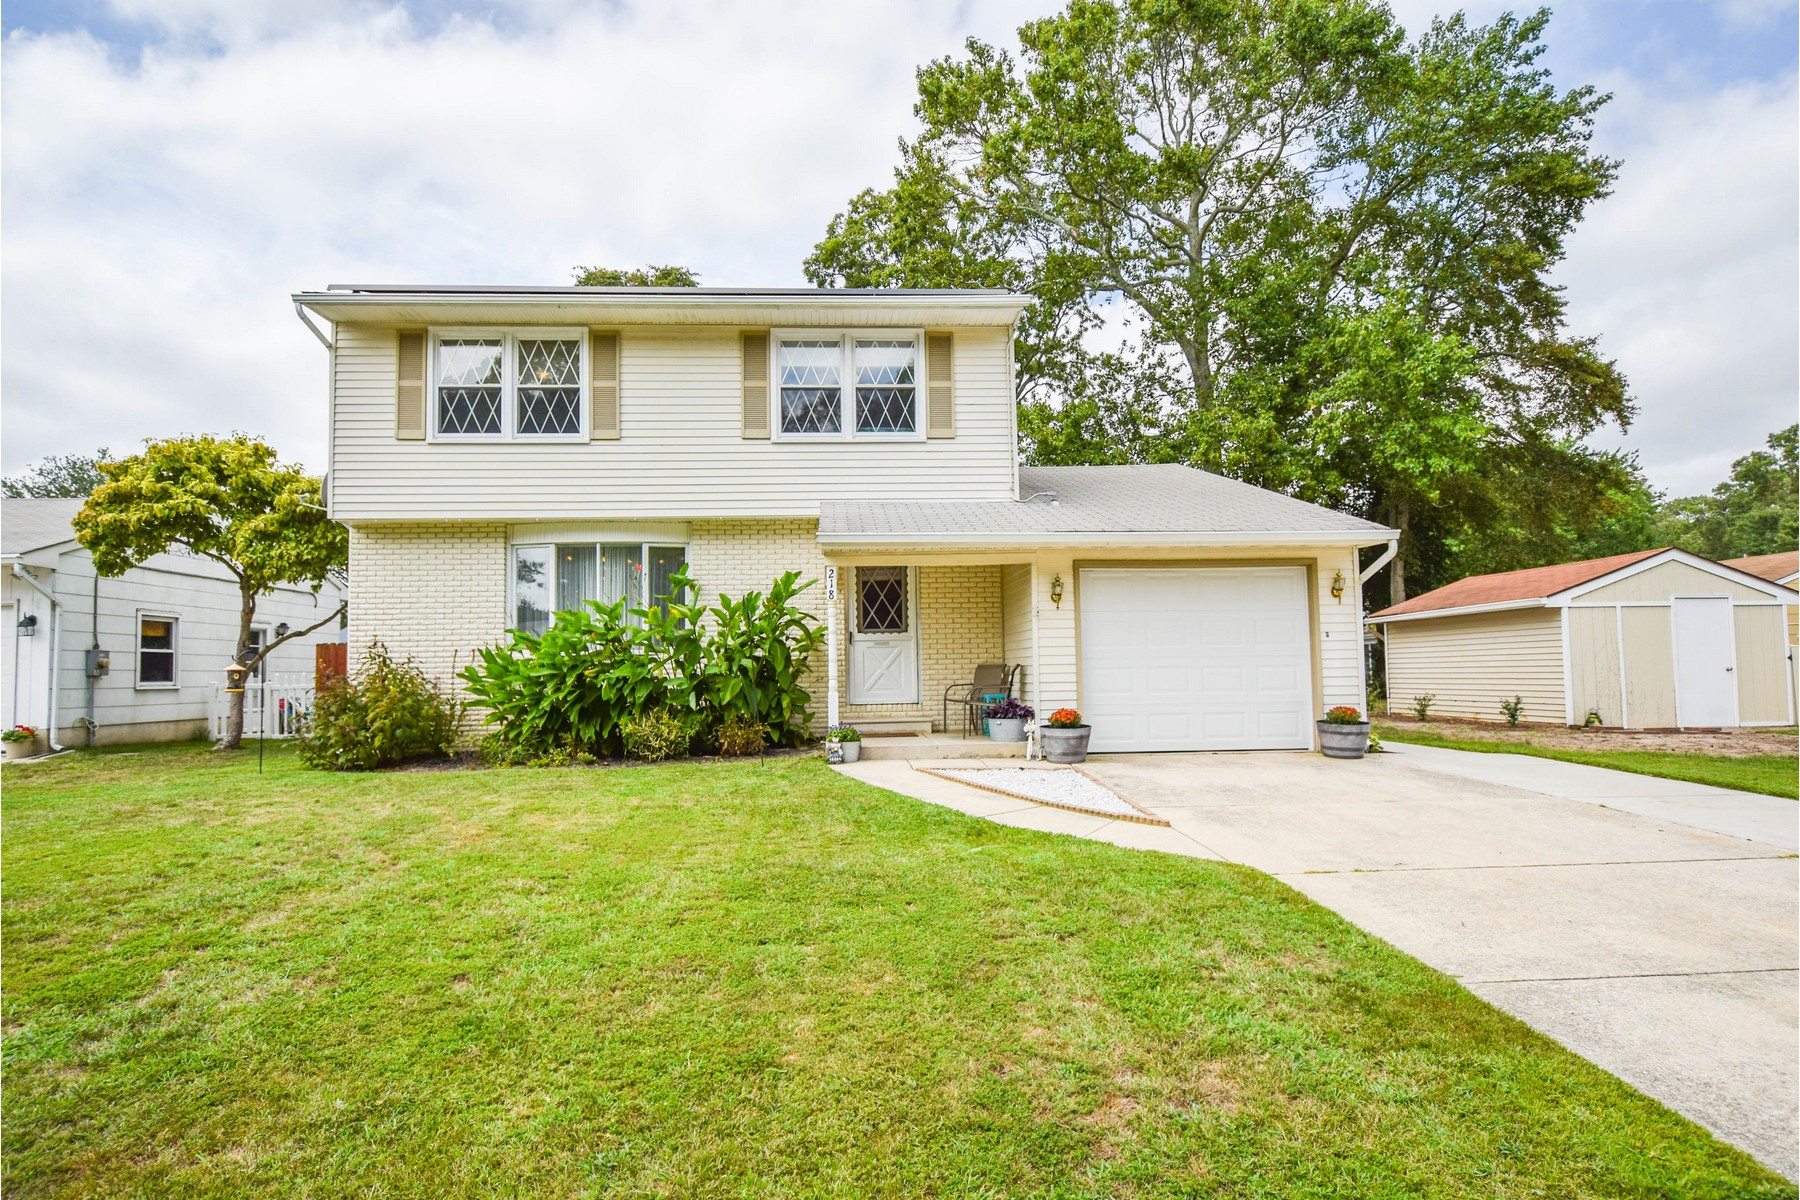 Single Family Homes for Sale at Cute Well Maintained Home 218 Deborah Lane, North Cape May, New Jersey 08204 United States